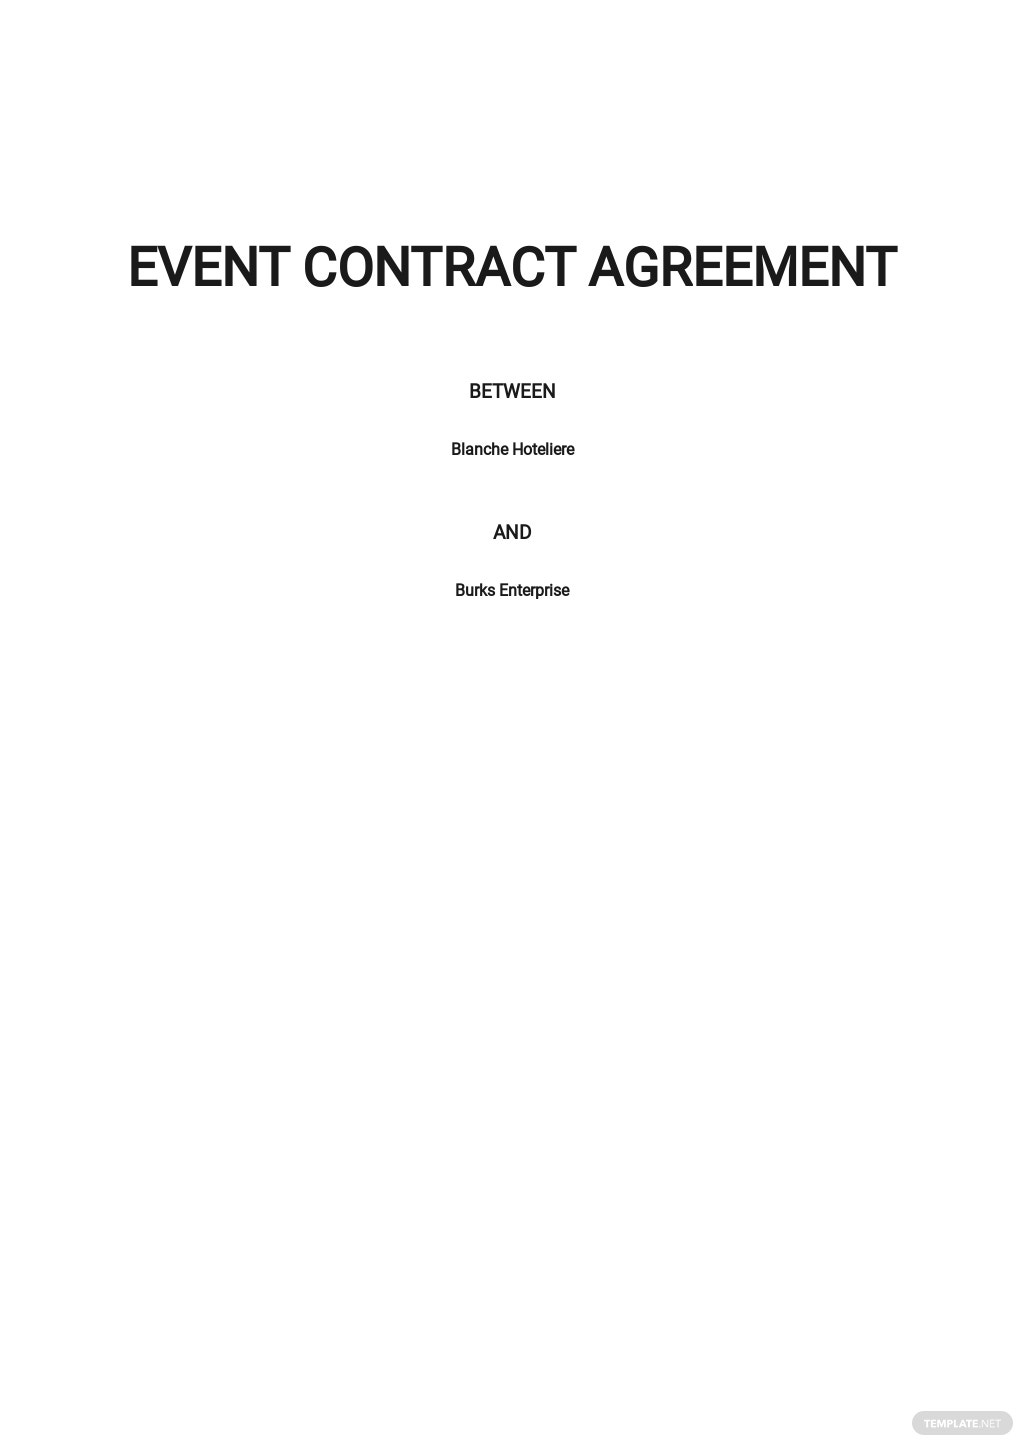 Event Contract Agreement Template .jpe